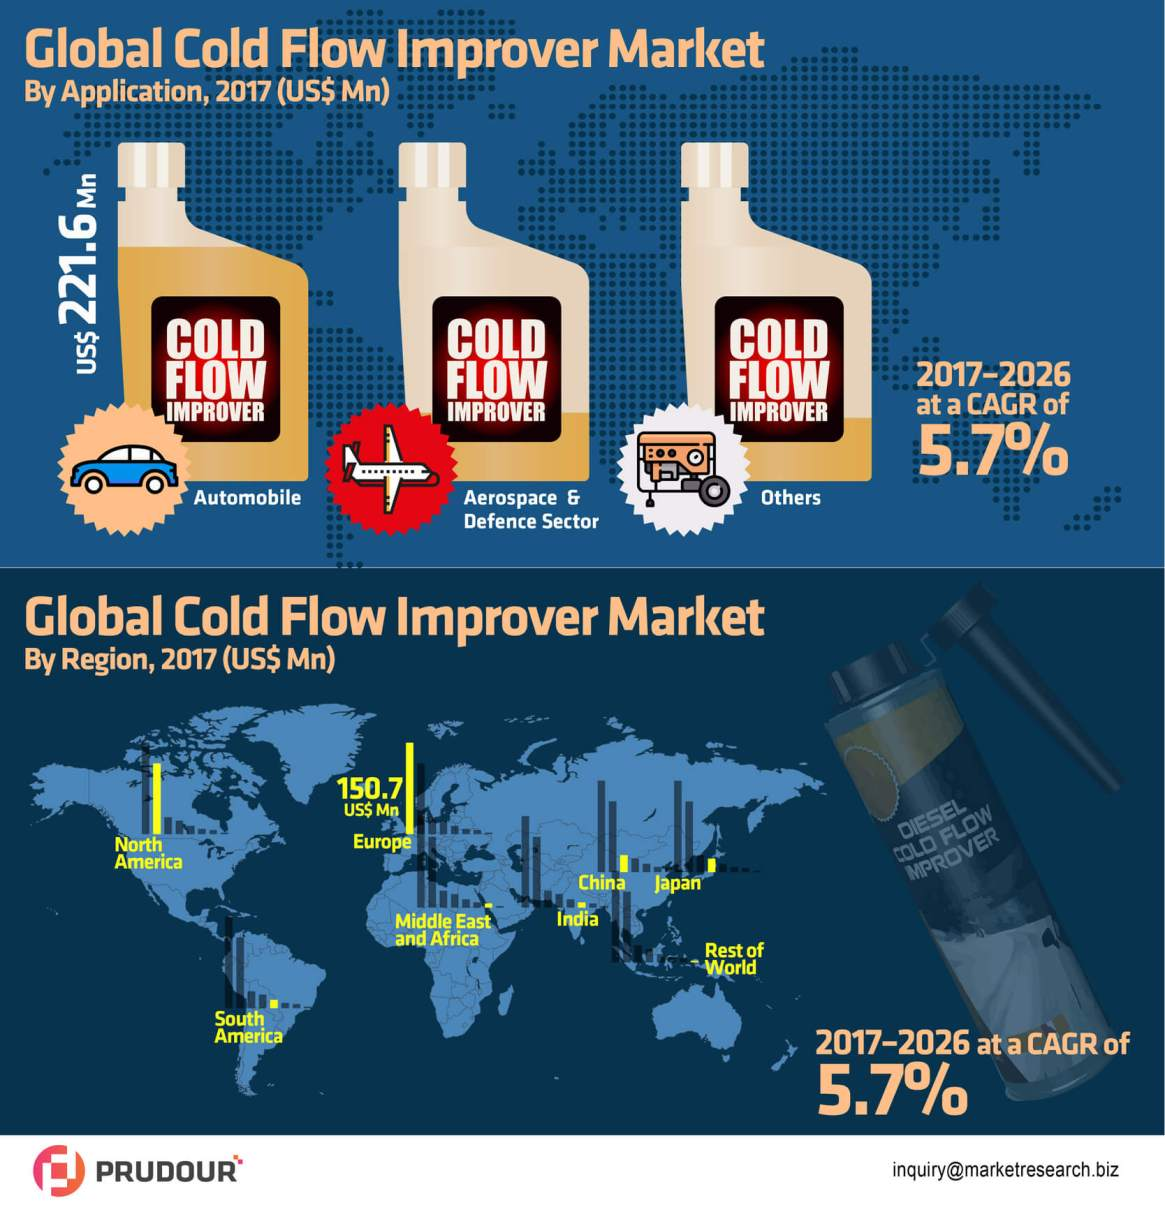 Worldwide Cold Flow Improver Market Is Expected To Reach US$ 1.9 Bn in 2021